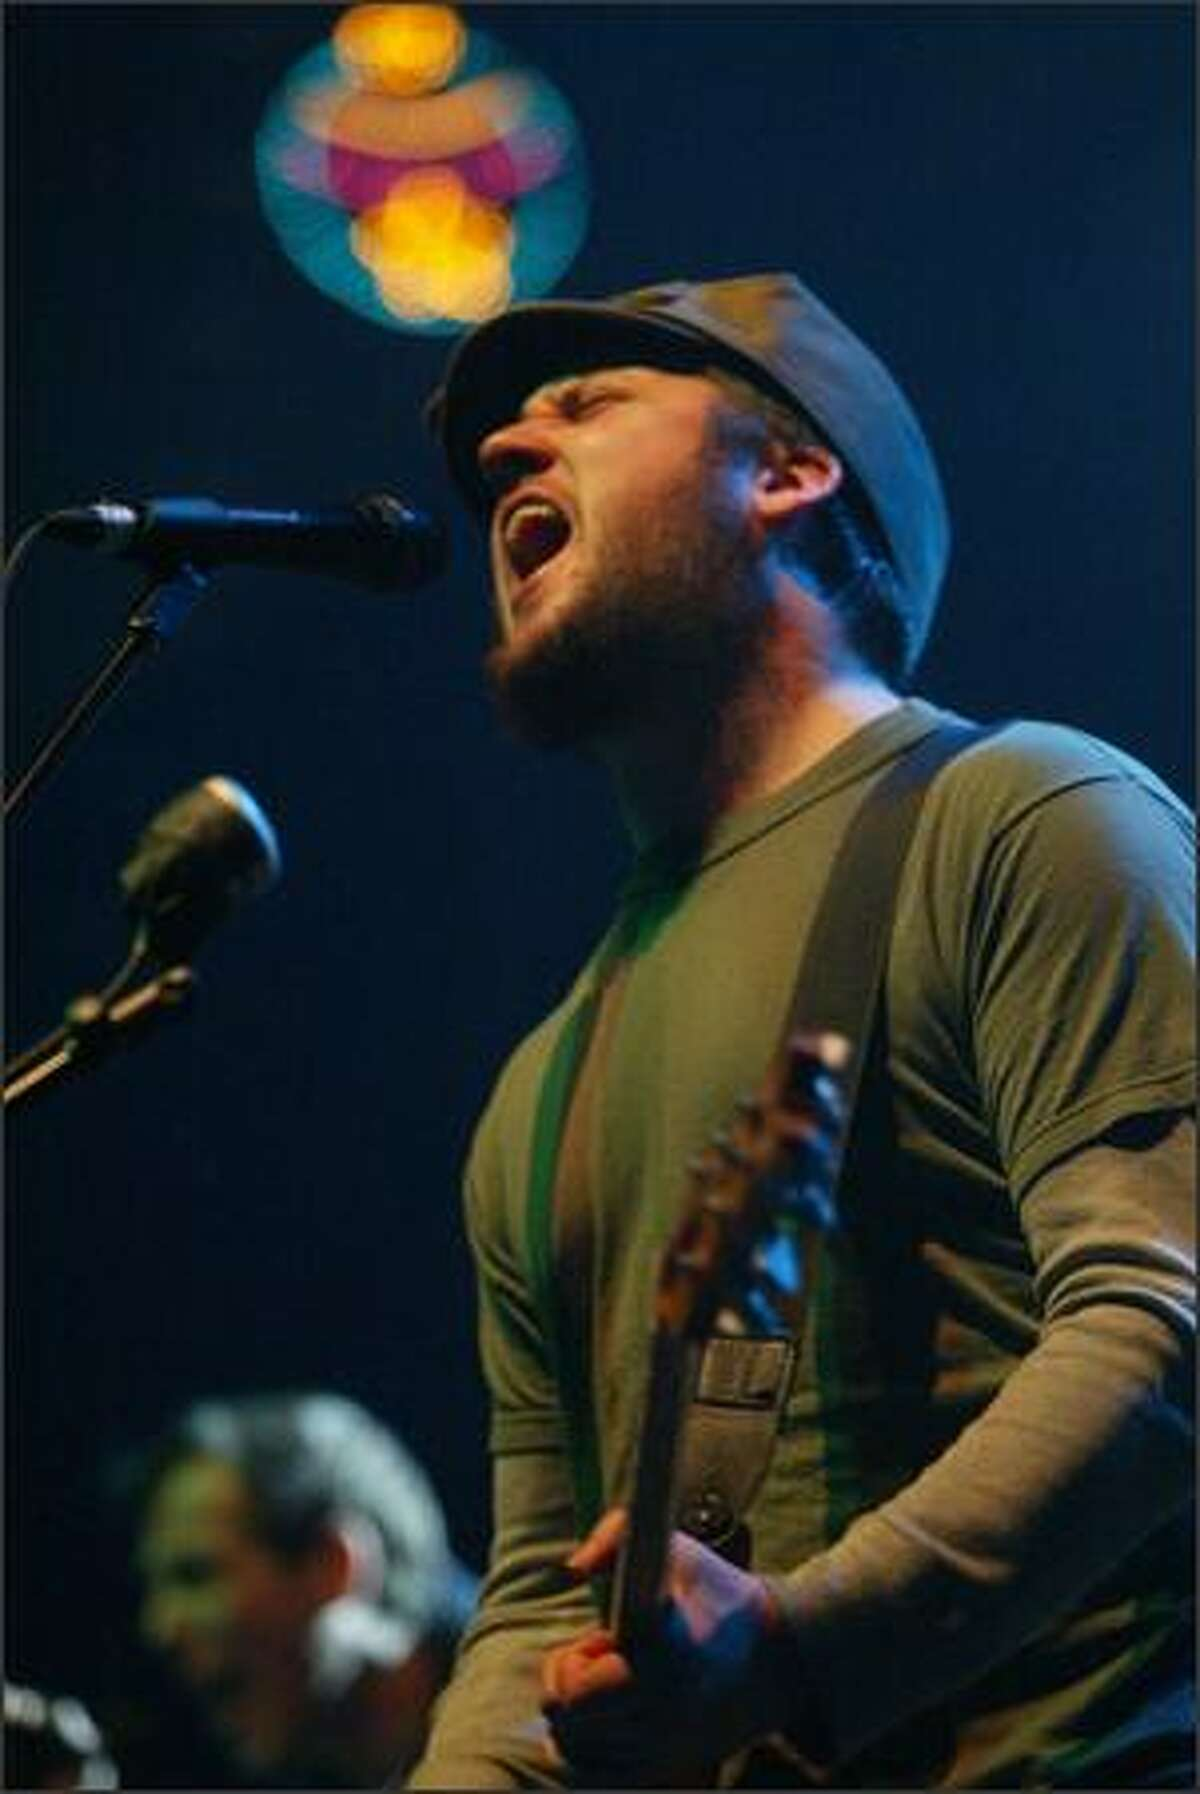 Modest Mouse lead singer Issac Brock.